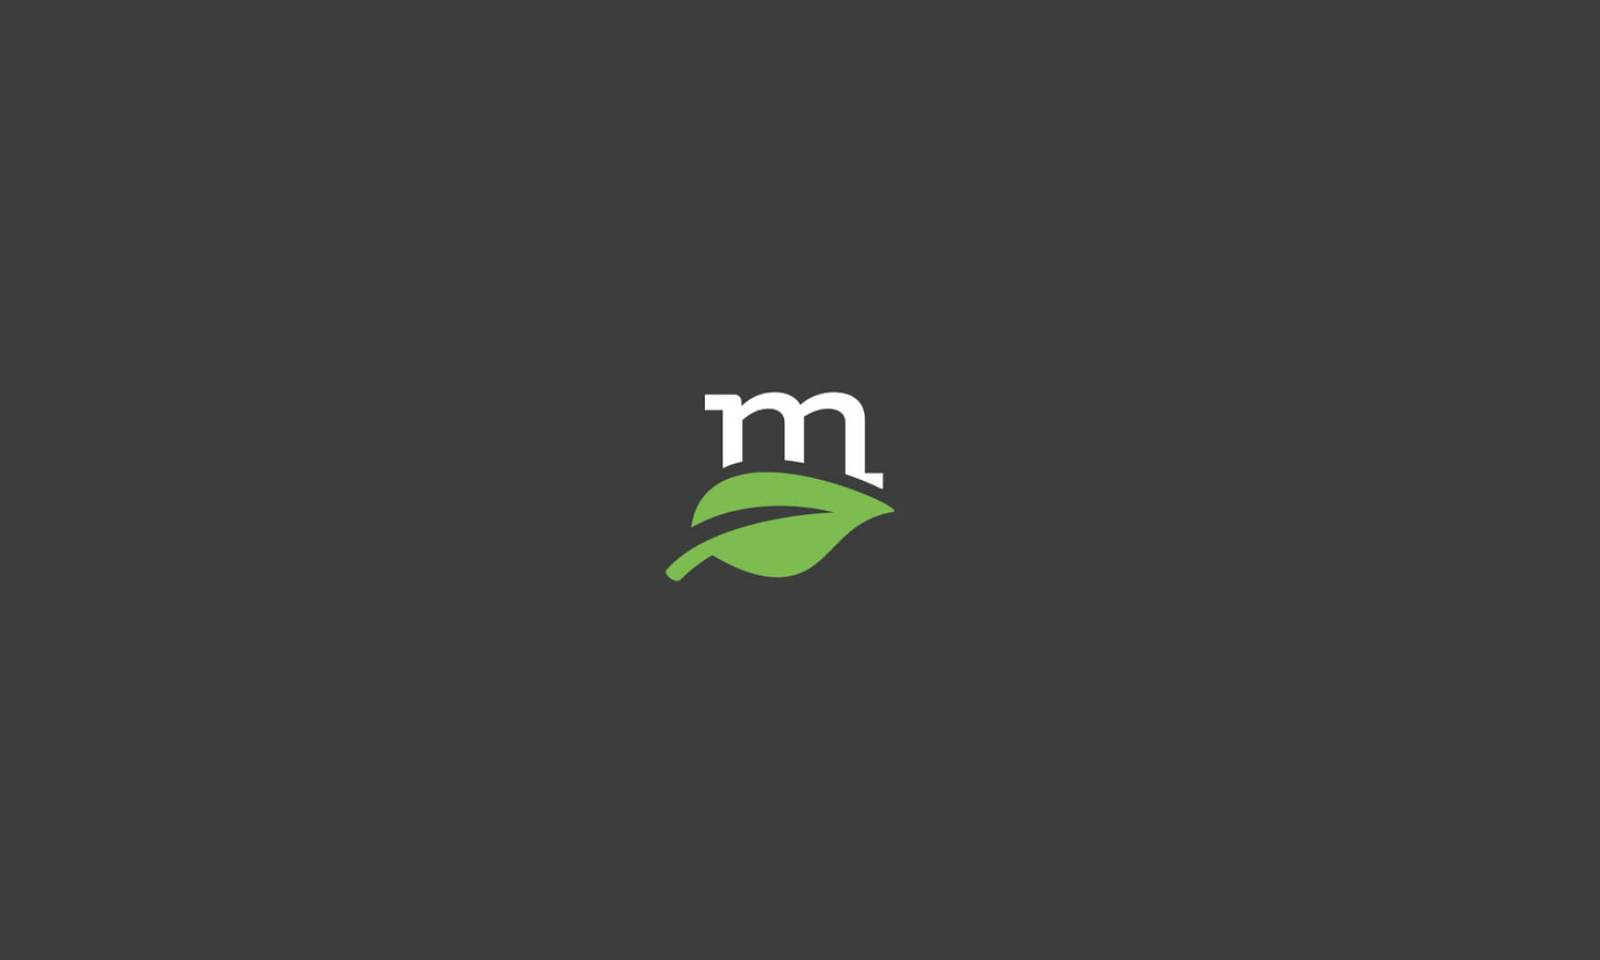 logo-Meadows-logo-corporate-identity-agency-graphic-design-canterbury.jpg